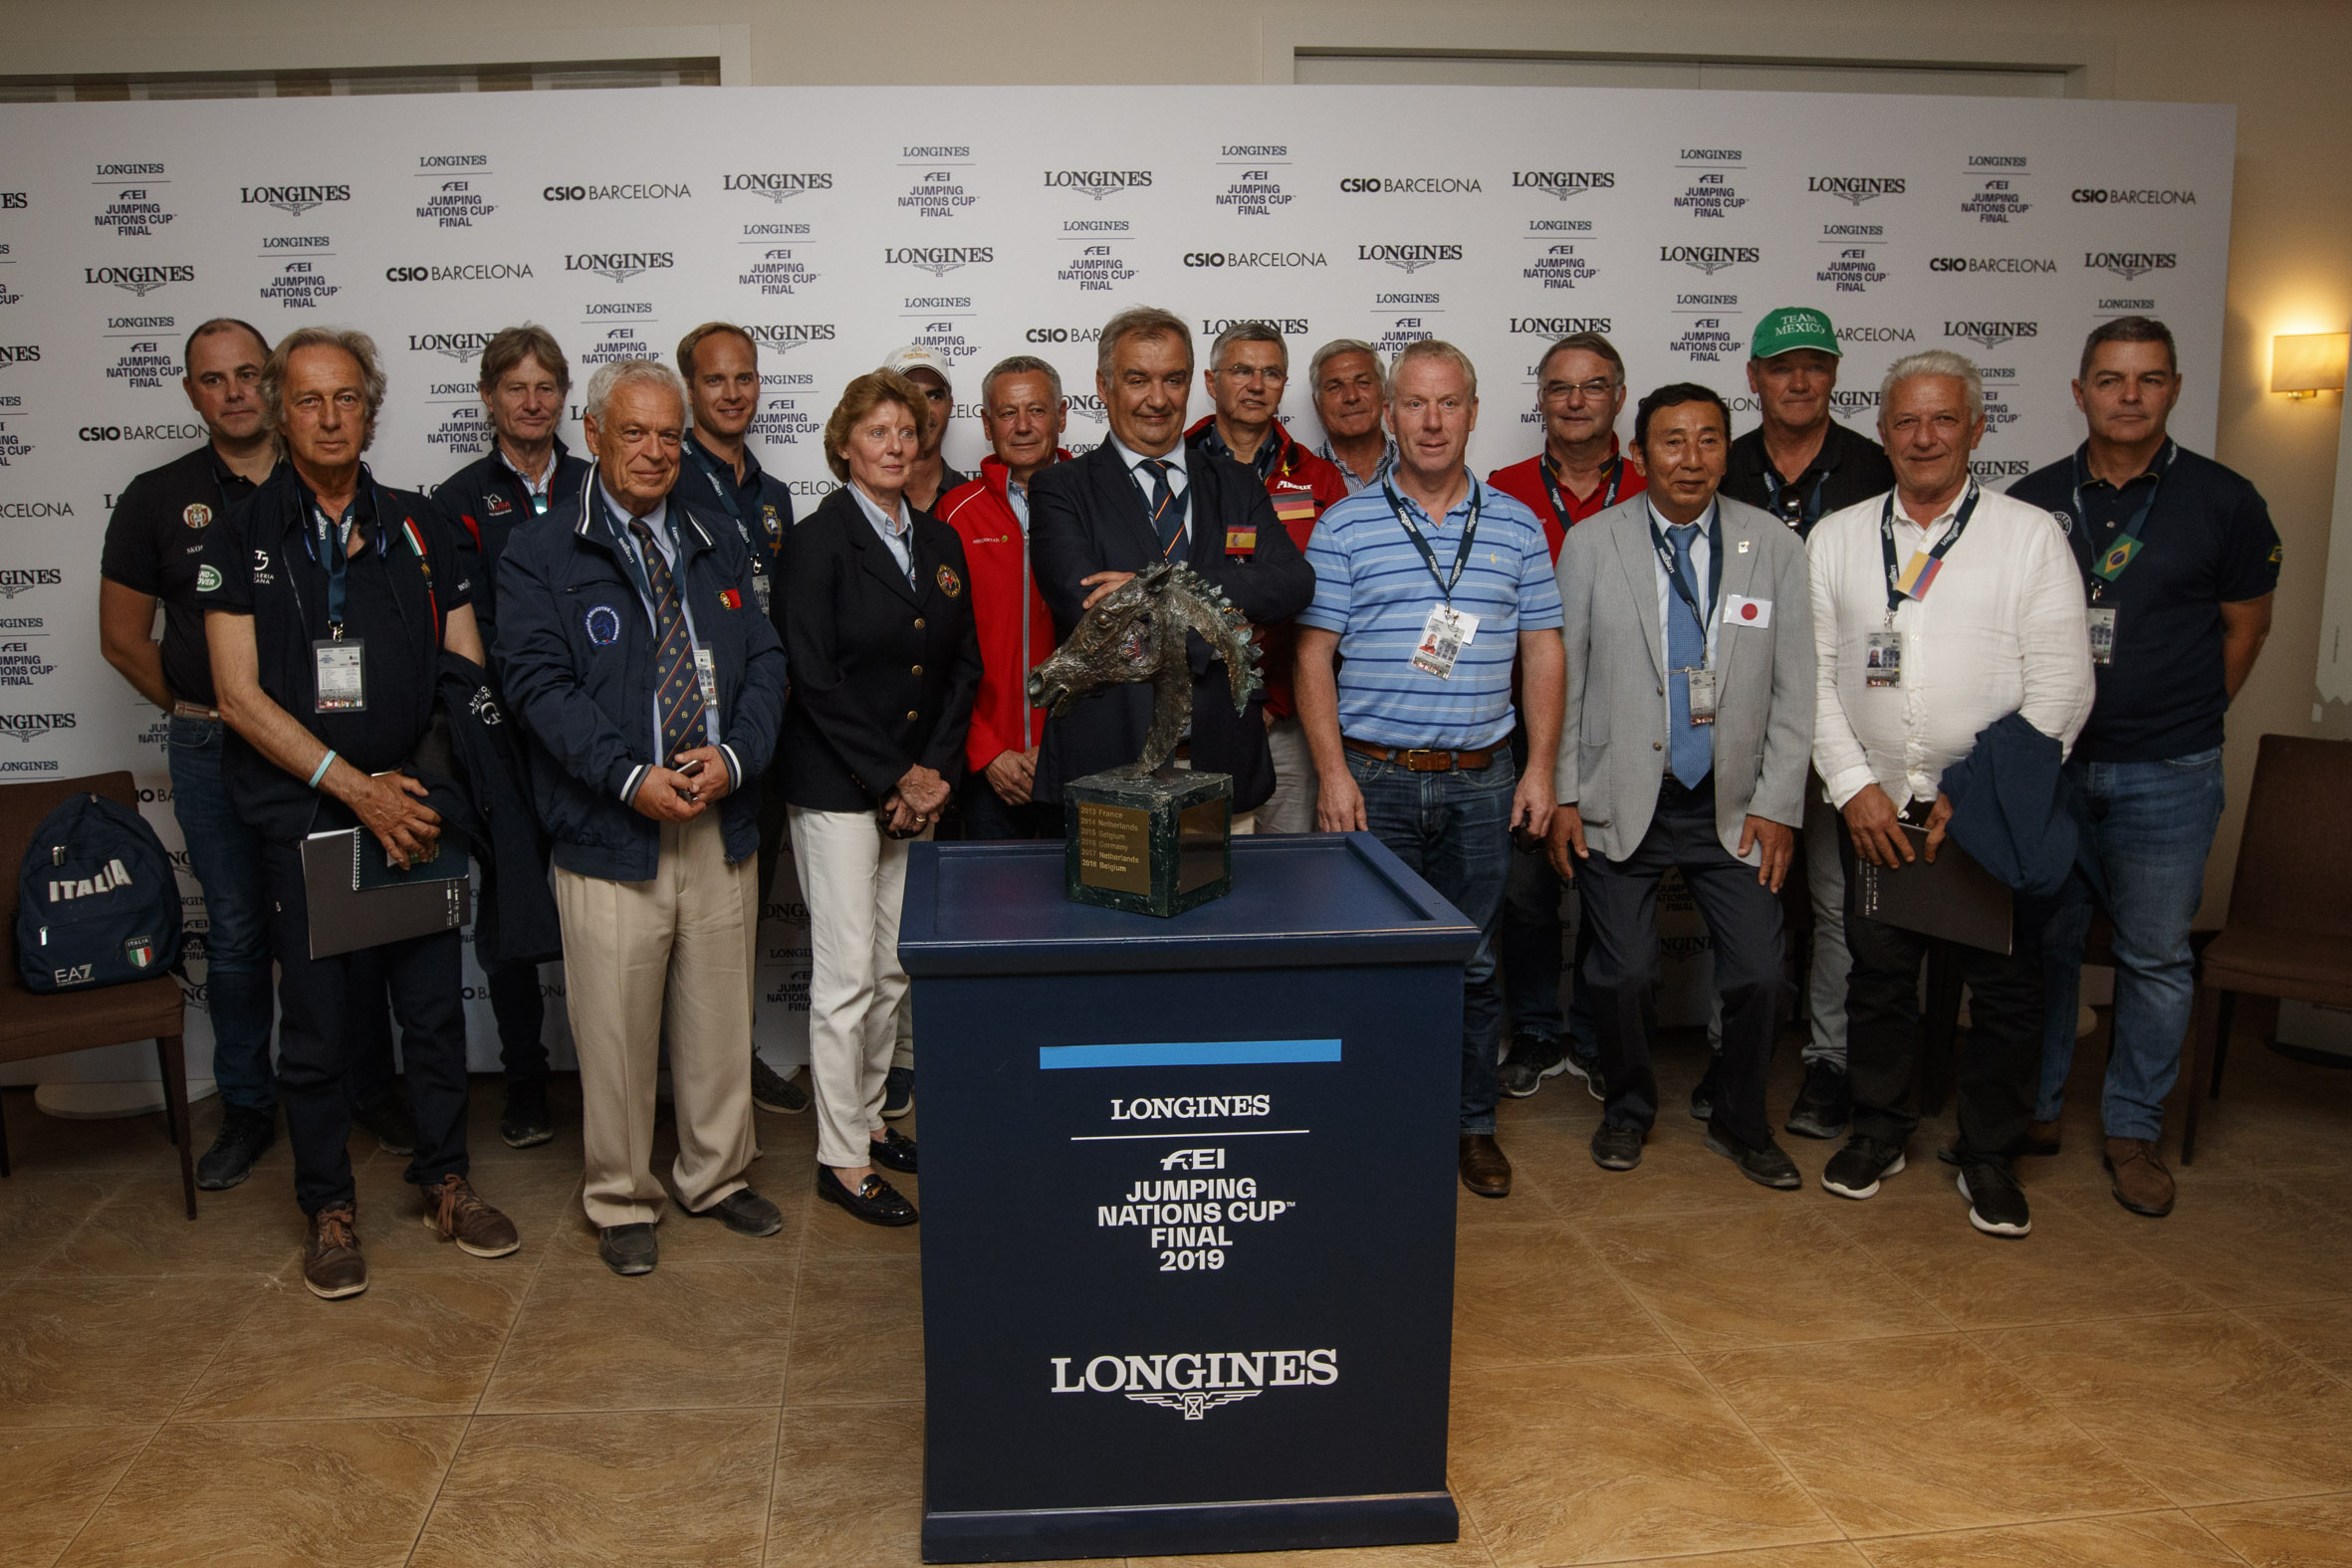 Longines FEI Jumping Nations Cup Final starting order draw